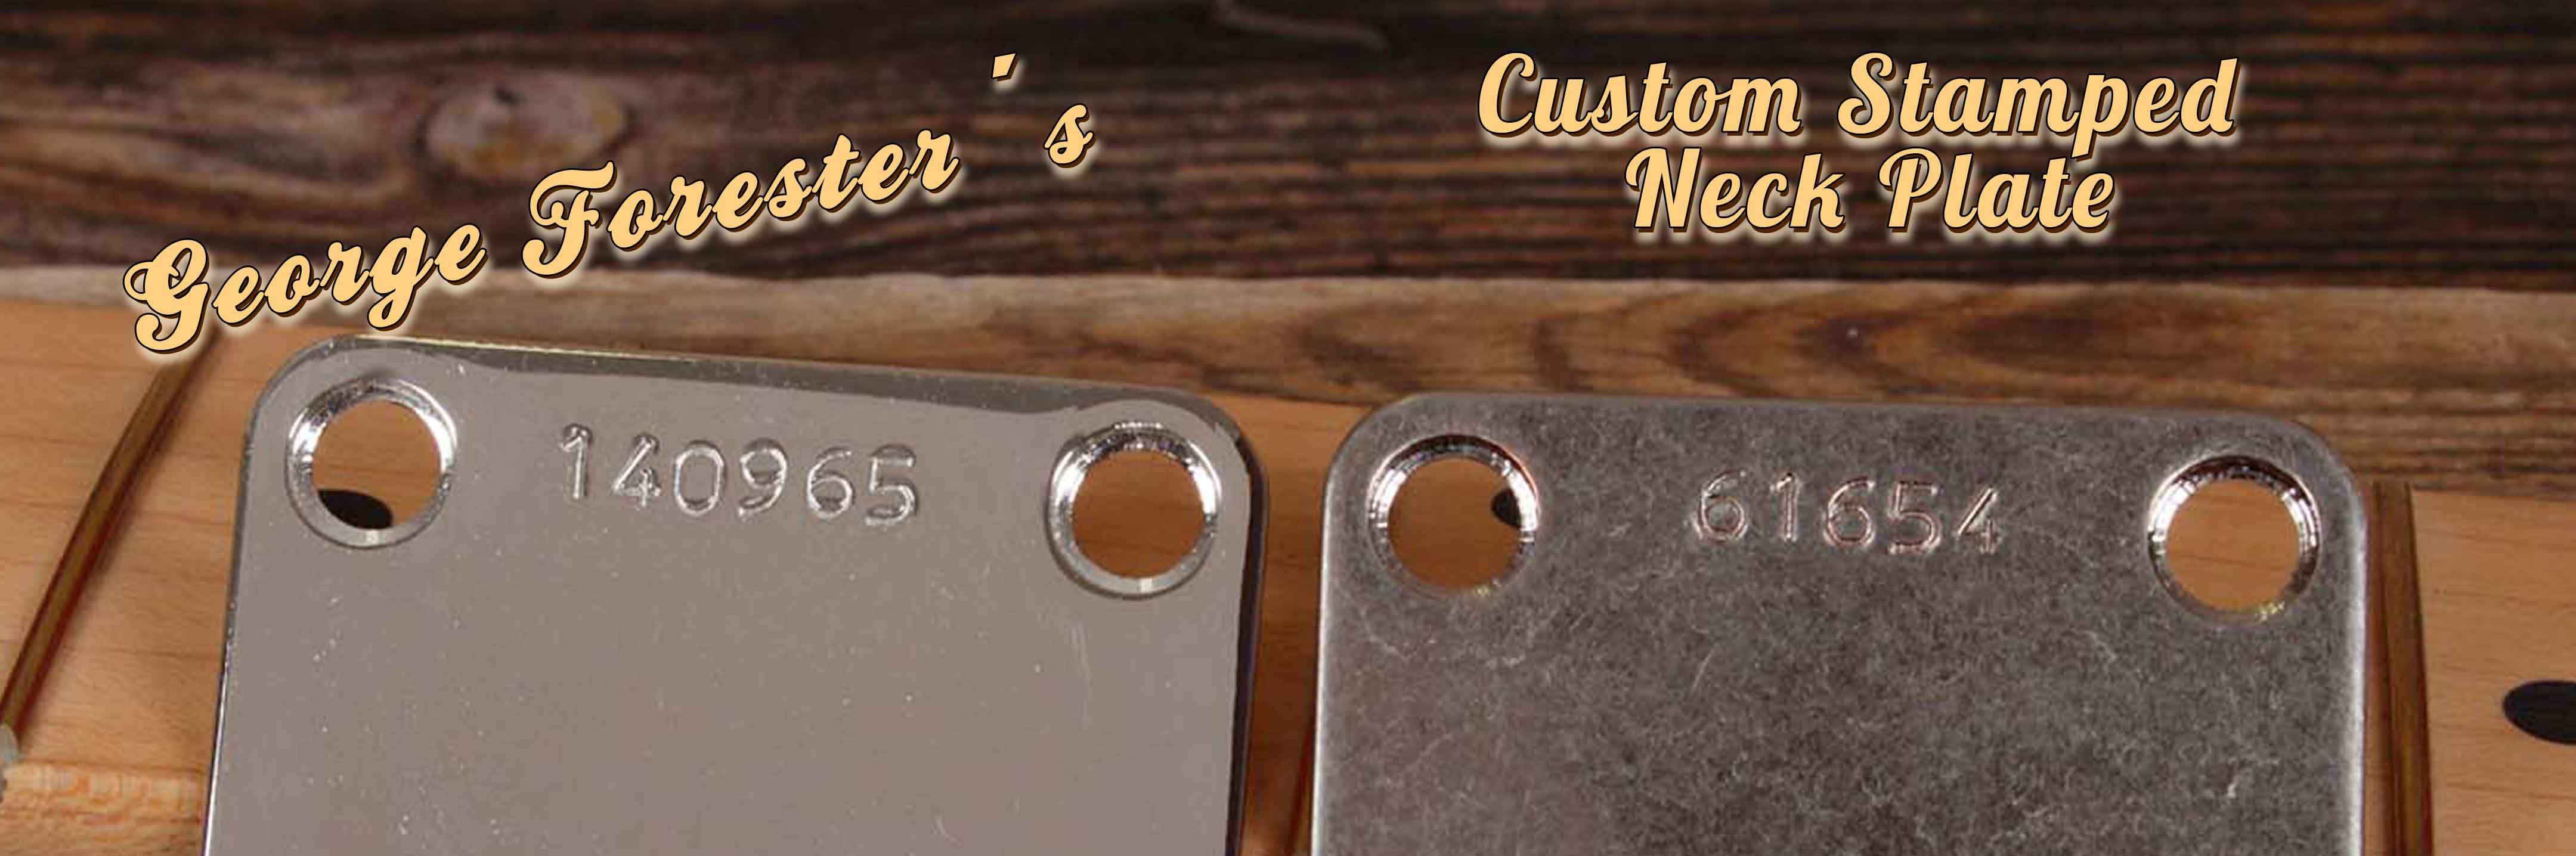 Custom Stamped Neck Plates